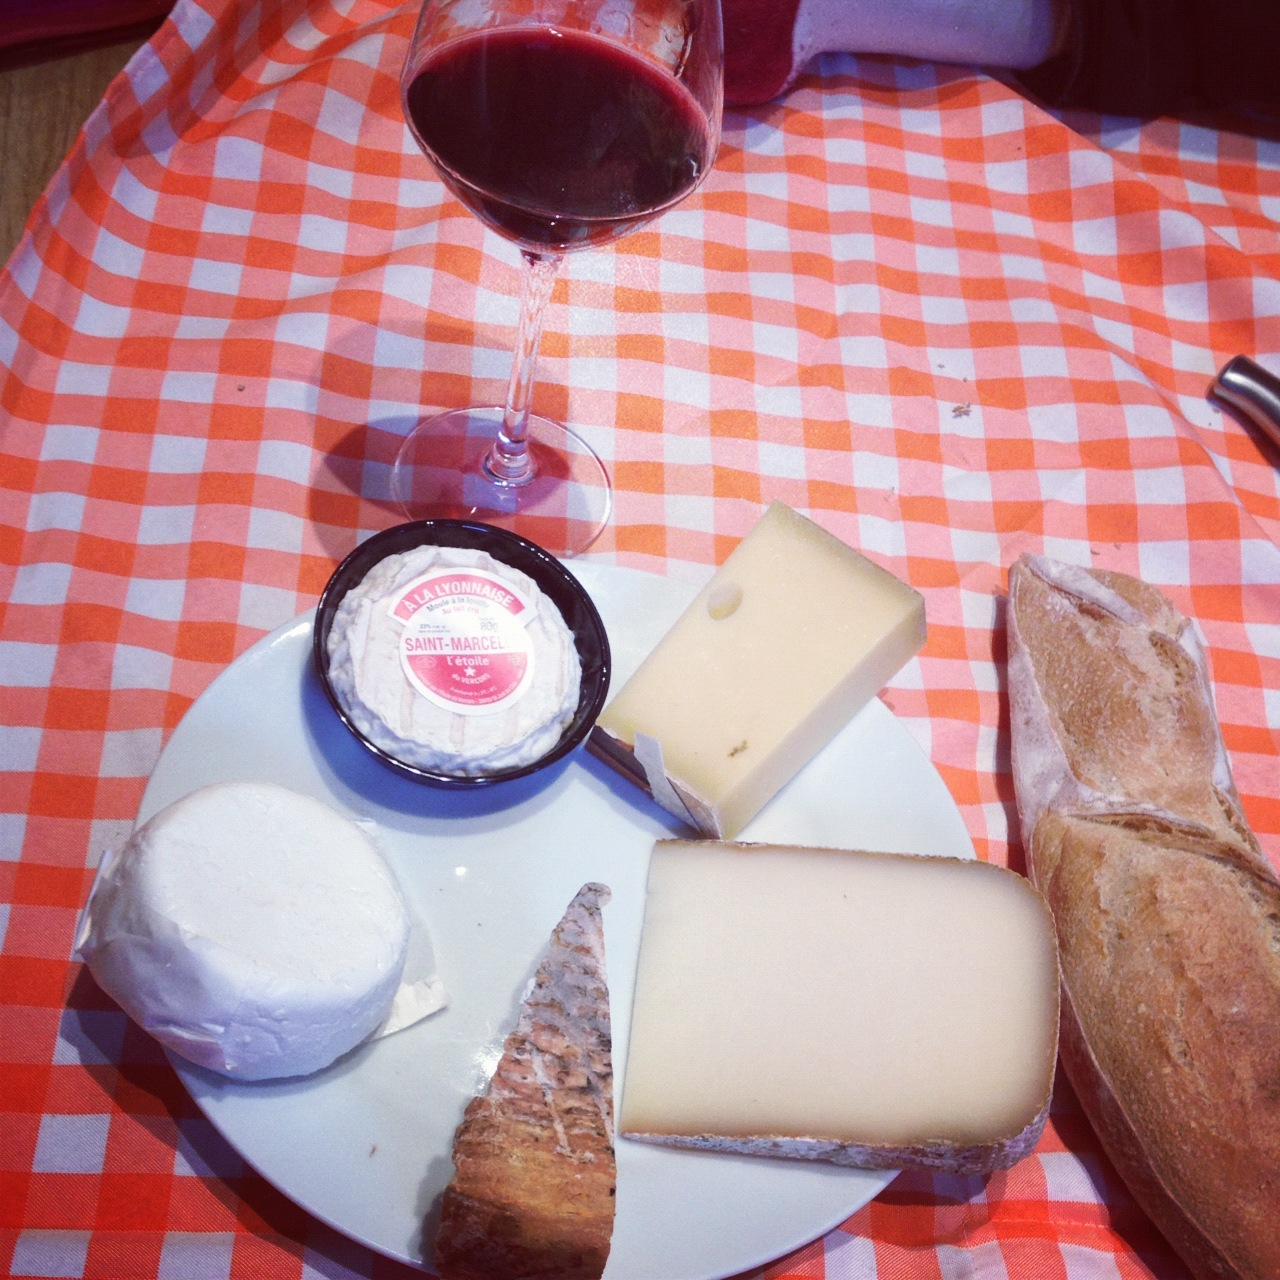 A very french food : bread, wine and cheese